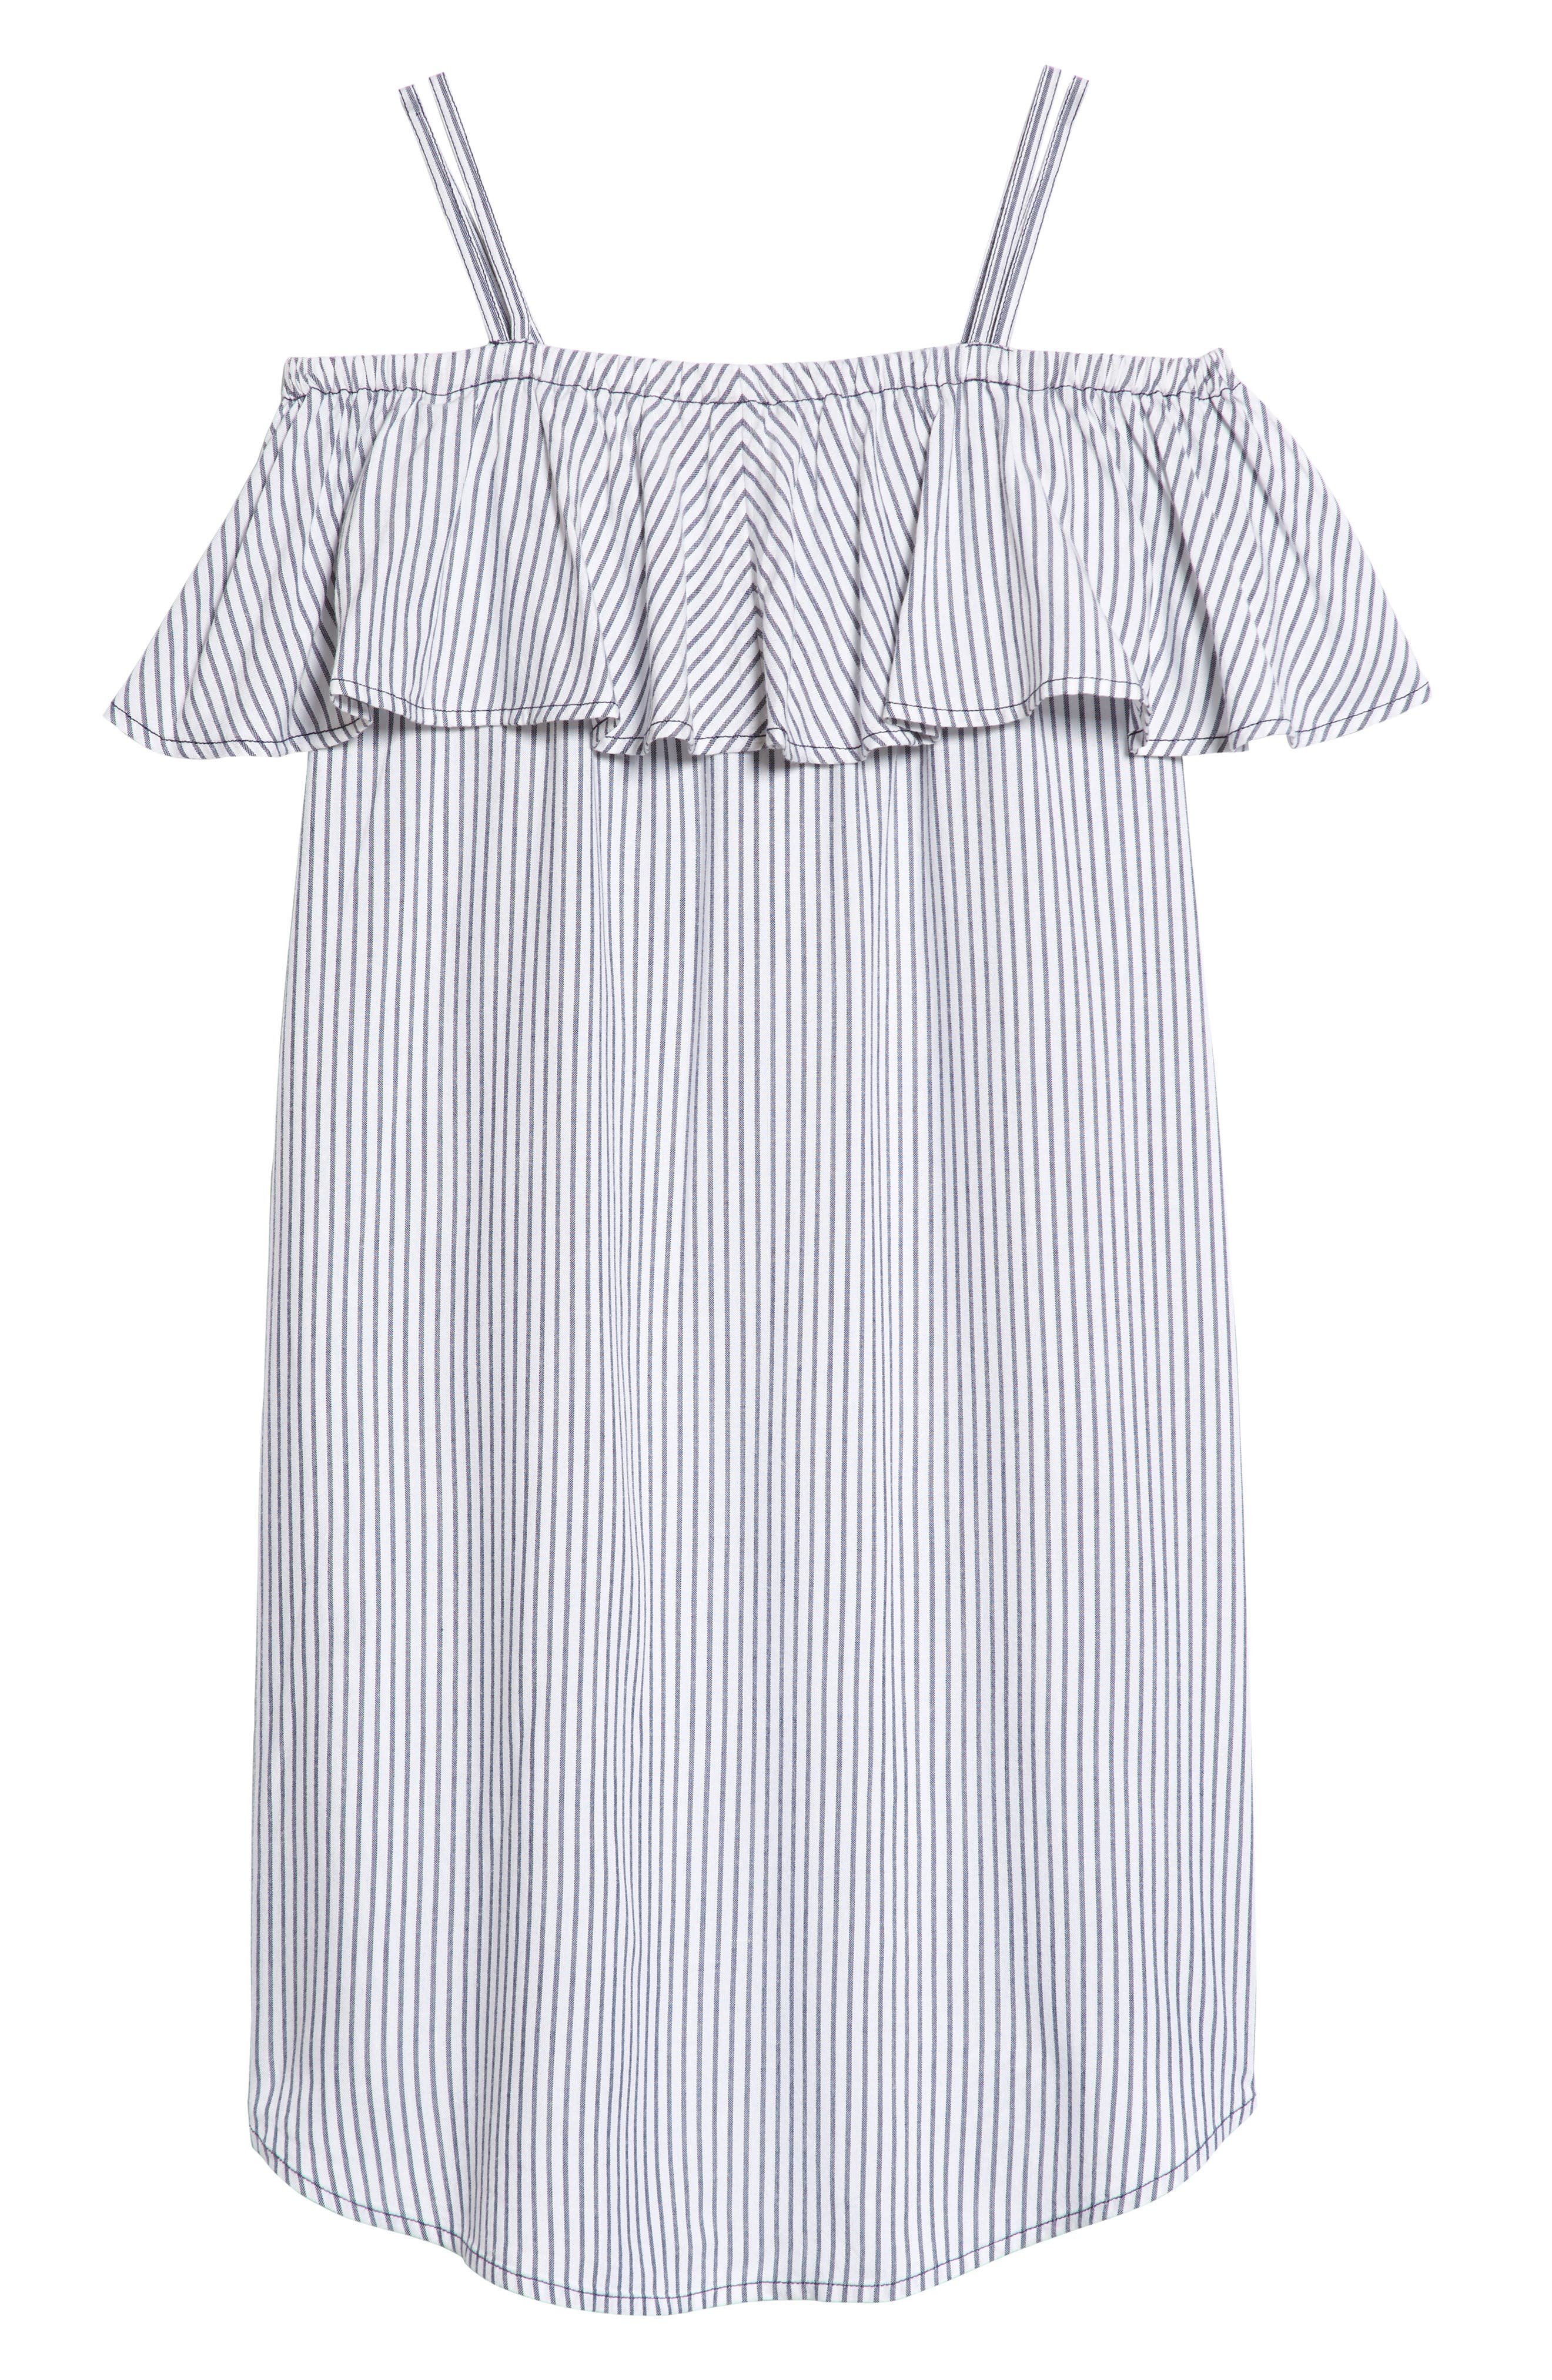 Ruffle Cold Shoulder Dress,                             Main thumbnail 1, color,                             White- Blue Stripe